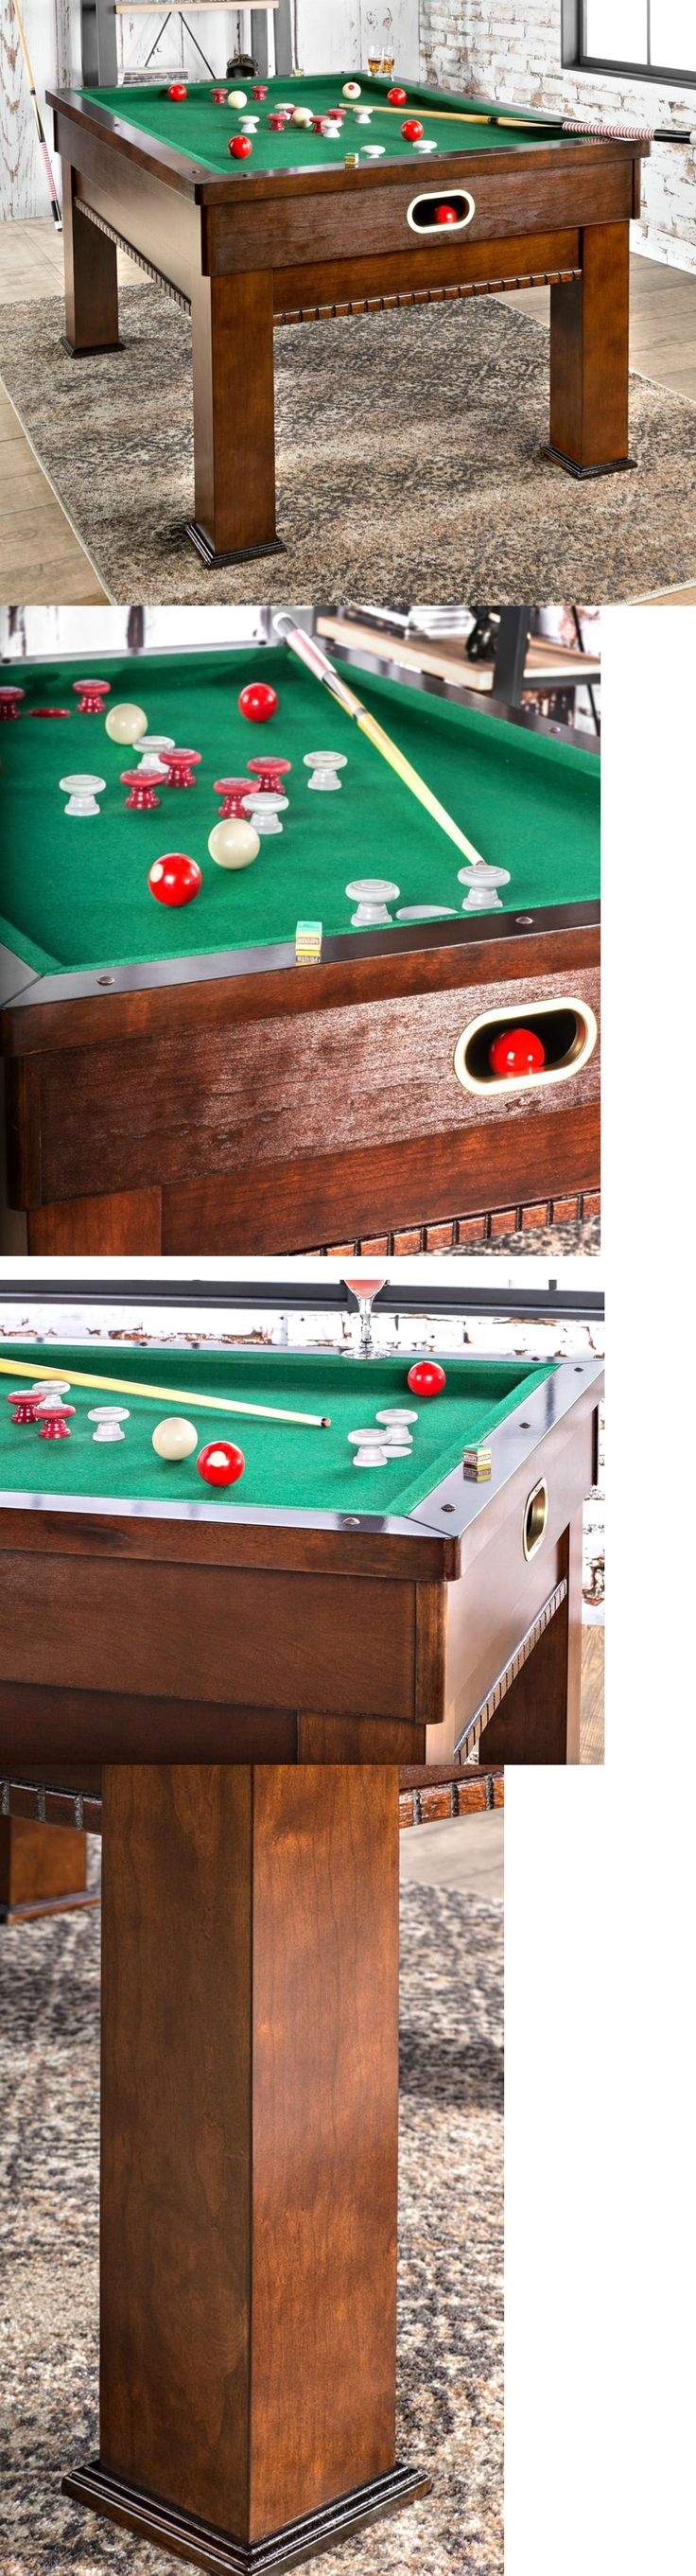 Unique pool tables family room contemporary with bold pool table cool - Tables 21213 Bumper Pool Table Game Tables For Game Room Family Kids Bar Cues Balls